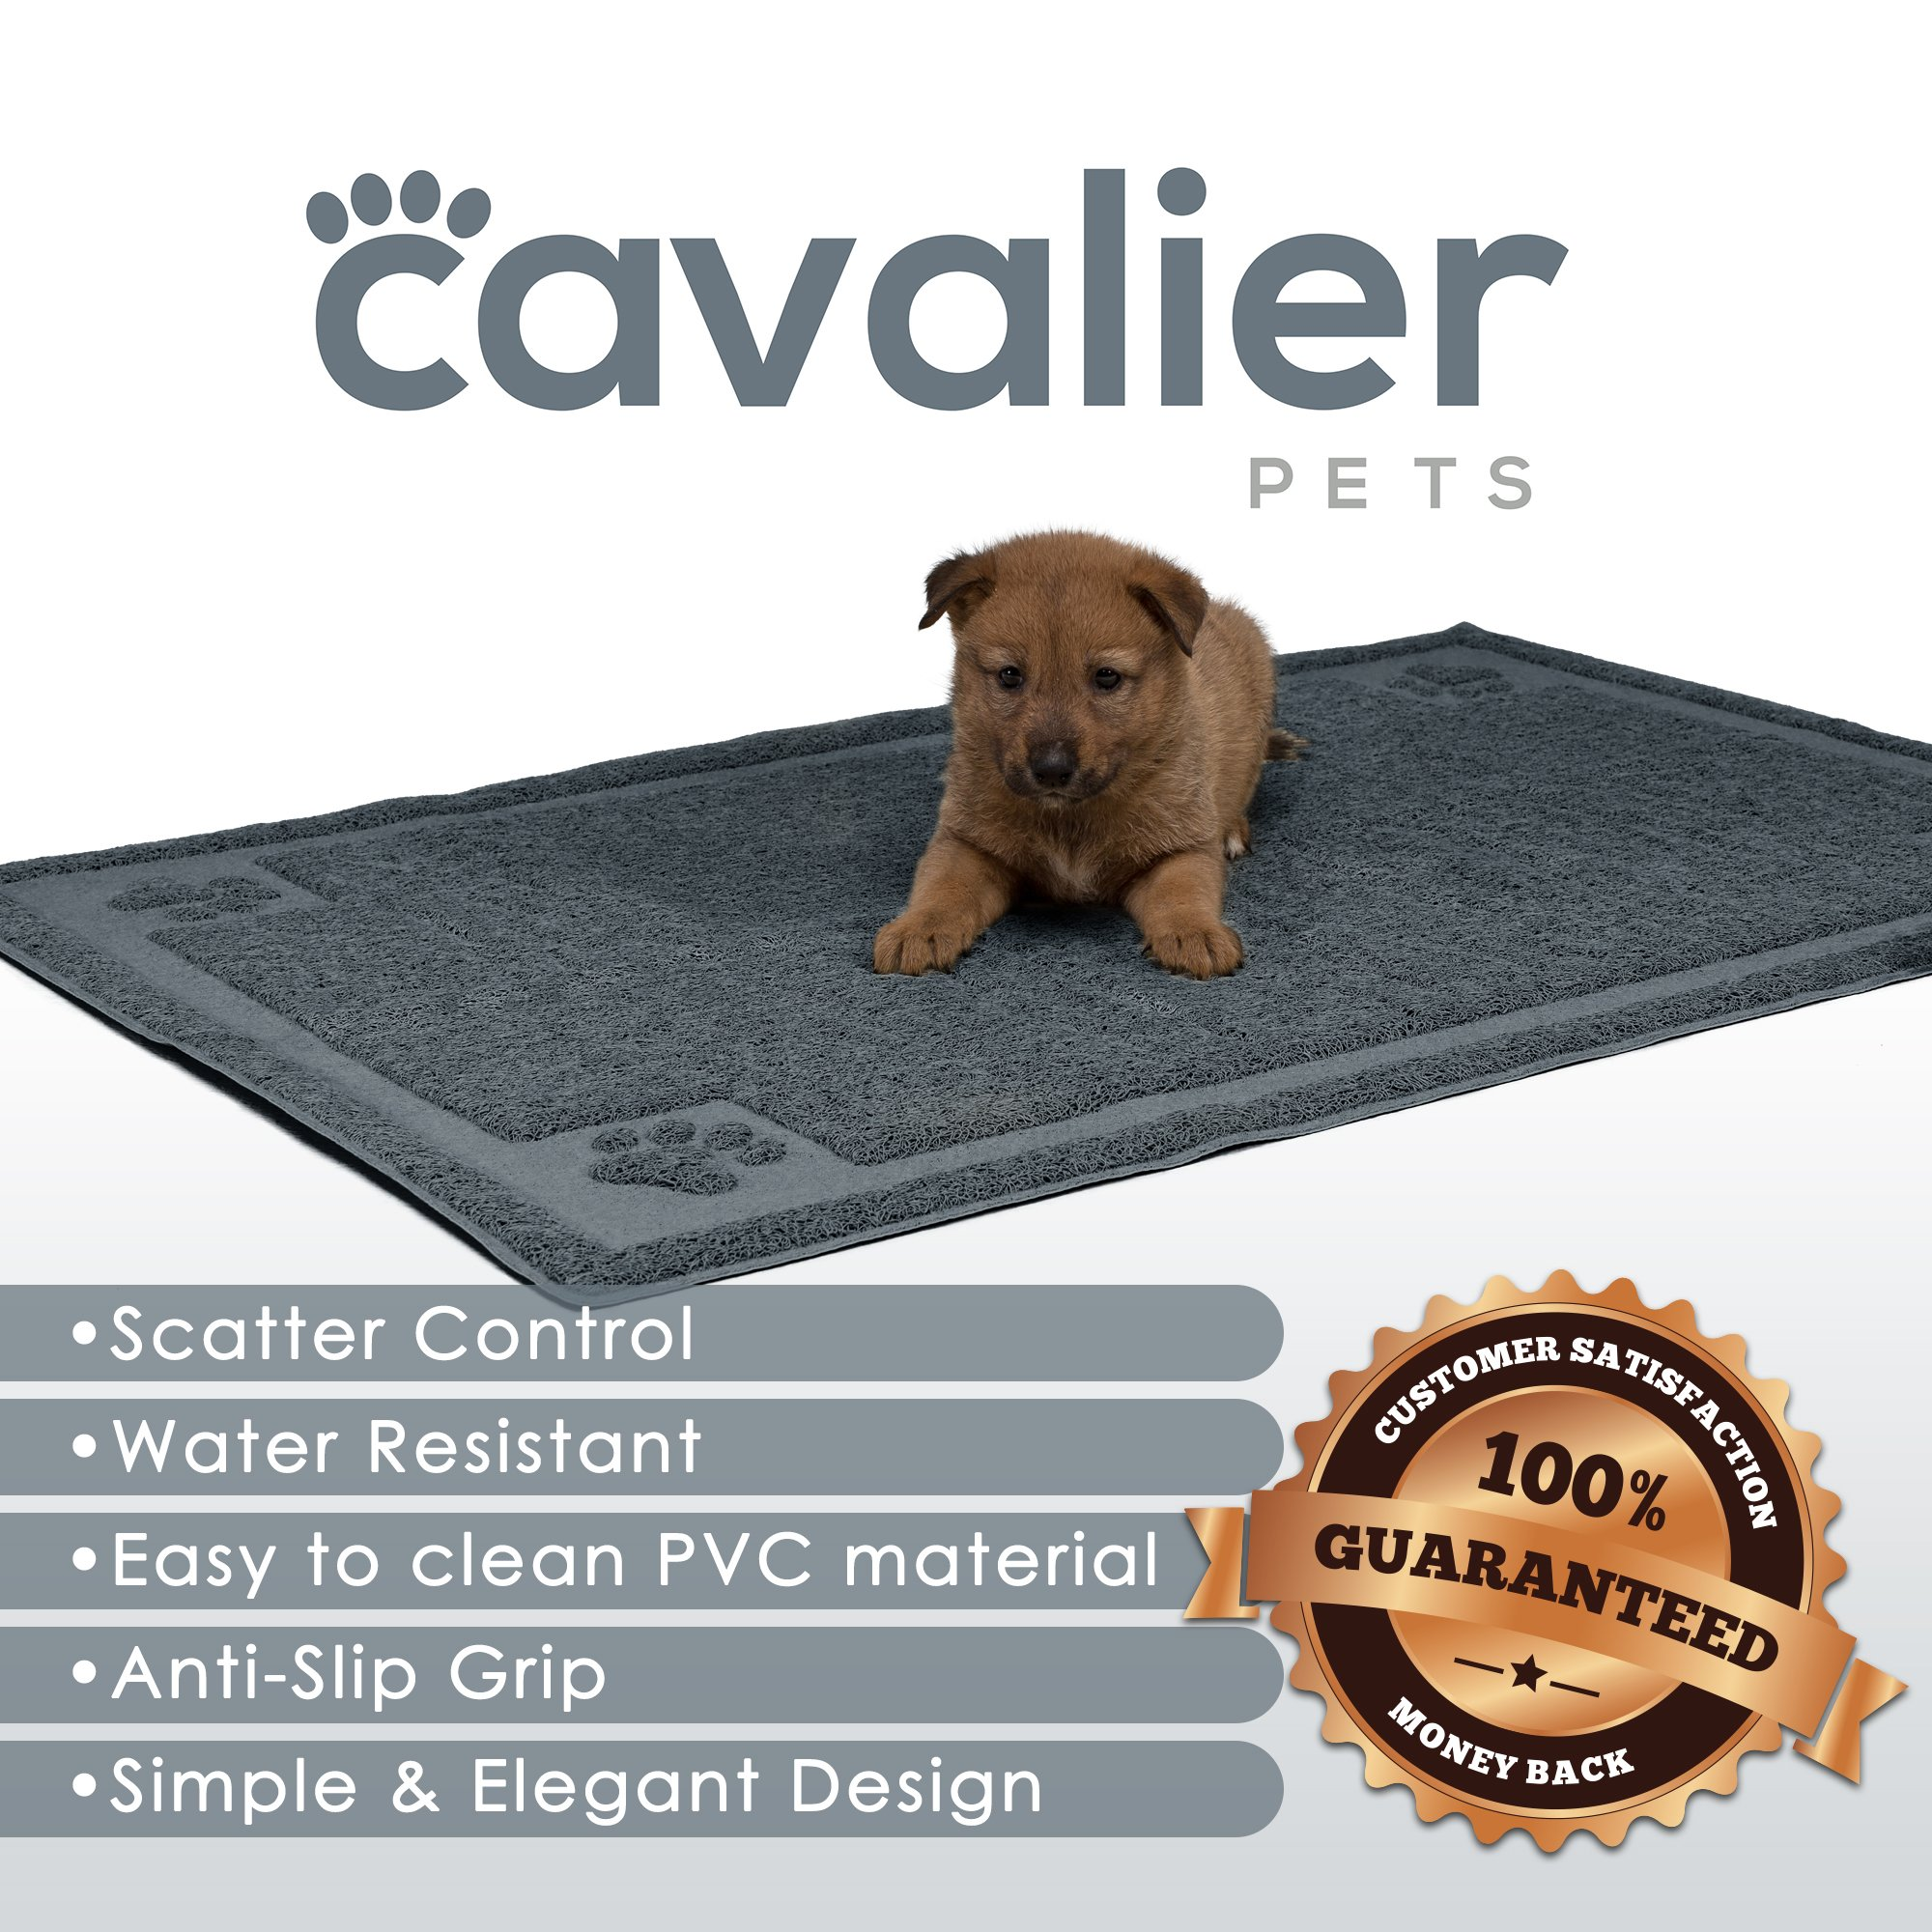 Cavalier Pets, Extra Large Dog Bowl Mat for Cats and Dogs, Silicone Non-Slip Absorbent Waterproof Dog Food Mat, Water Resistant and Easy to Clean, Unique Paw Design, 36 by 24 Inch, Grey by Cavalier Pets (Image #2)